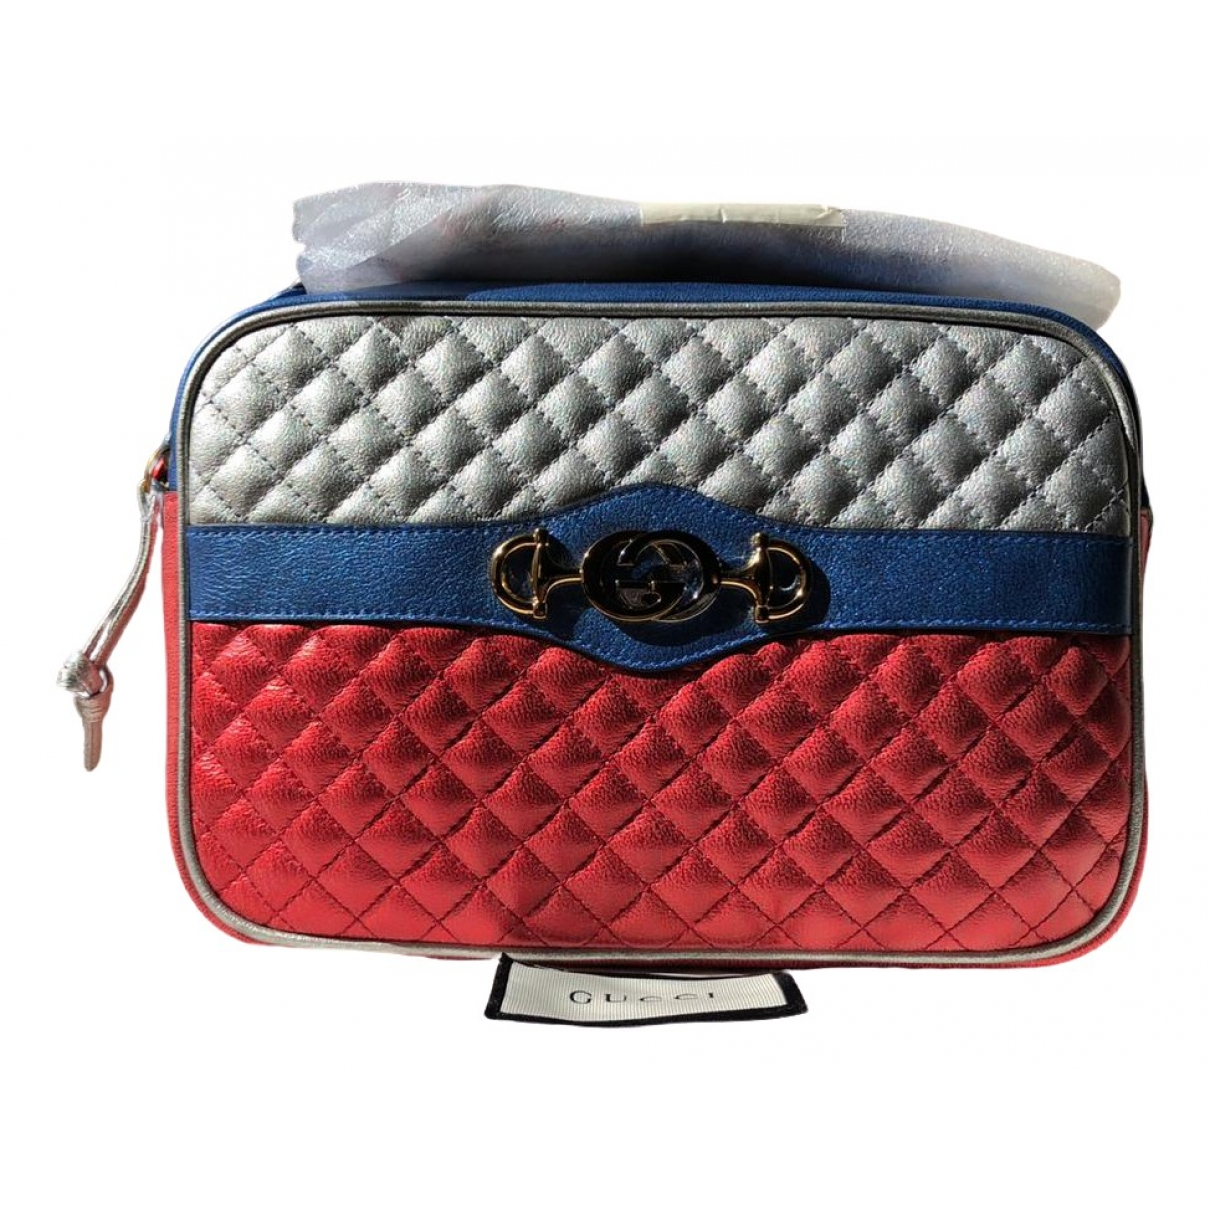 Gucci Laminated Multicolour Leather handbag for Women \N